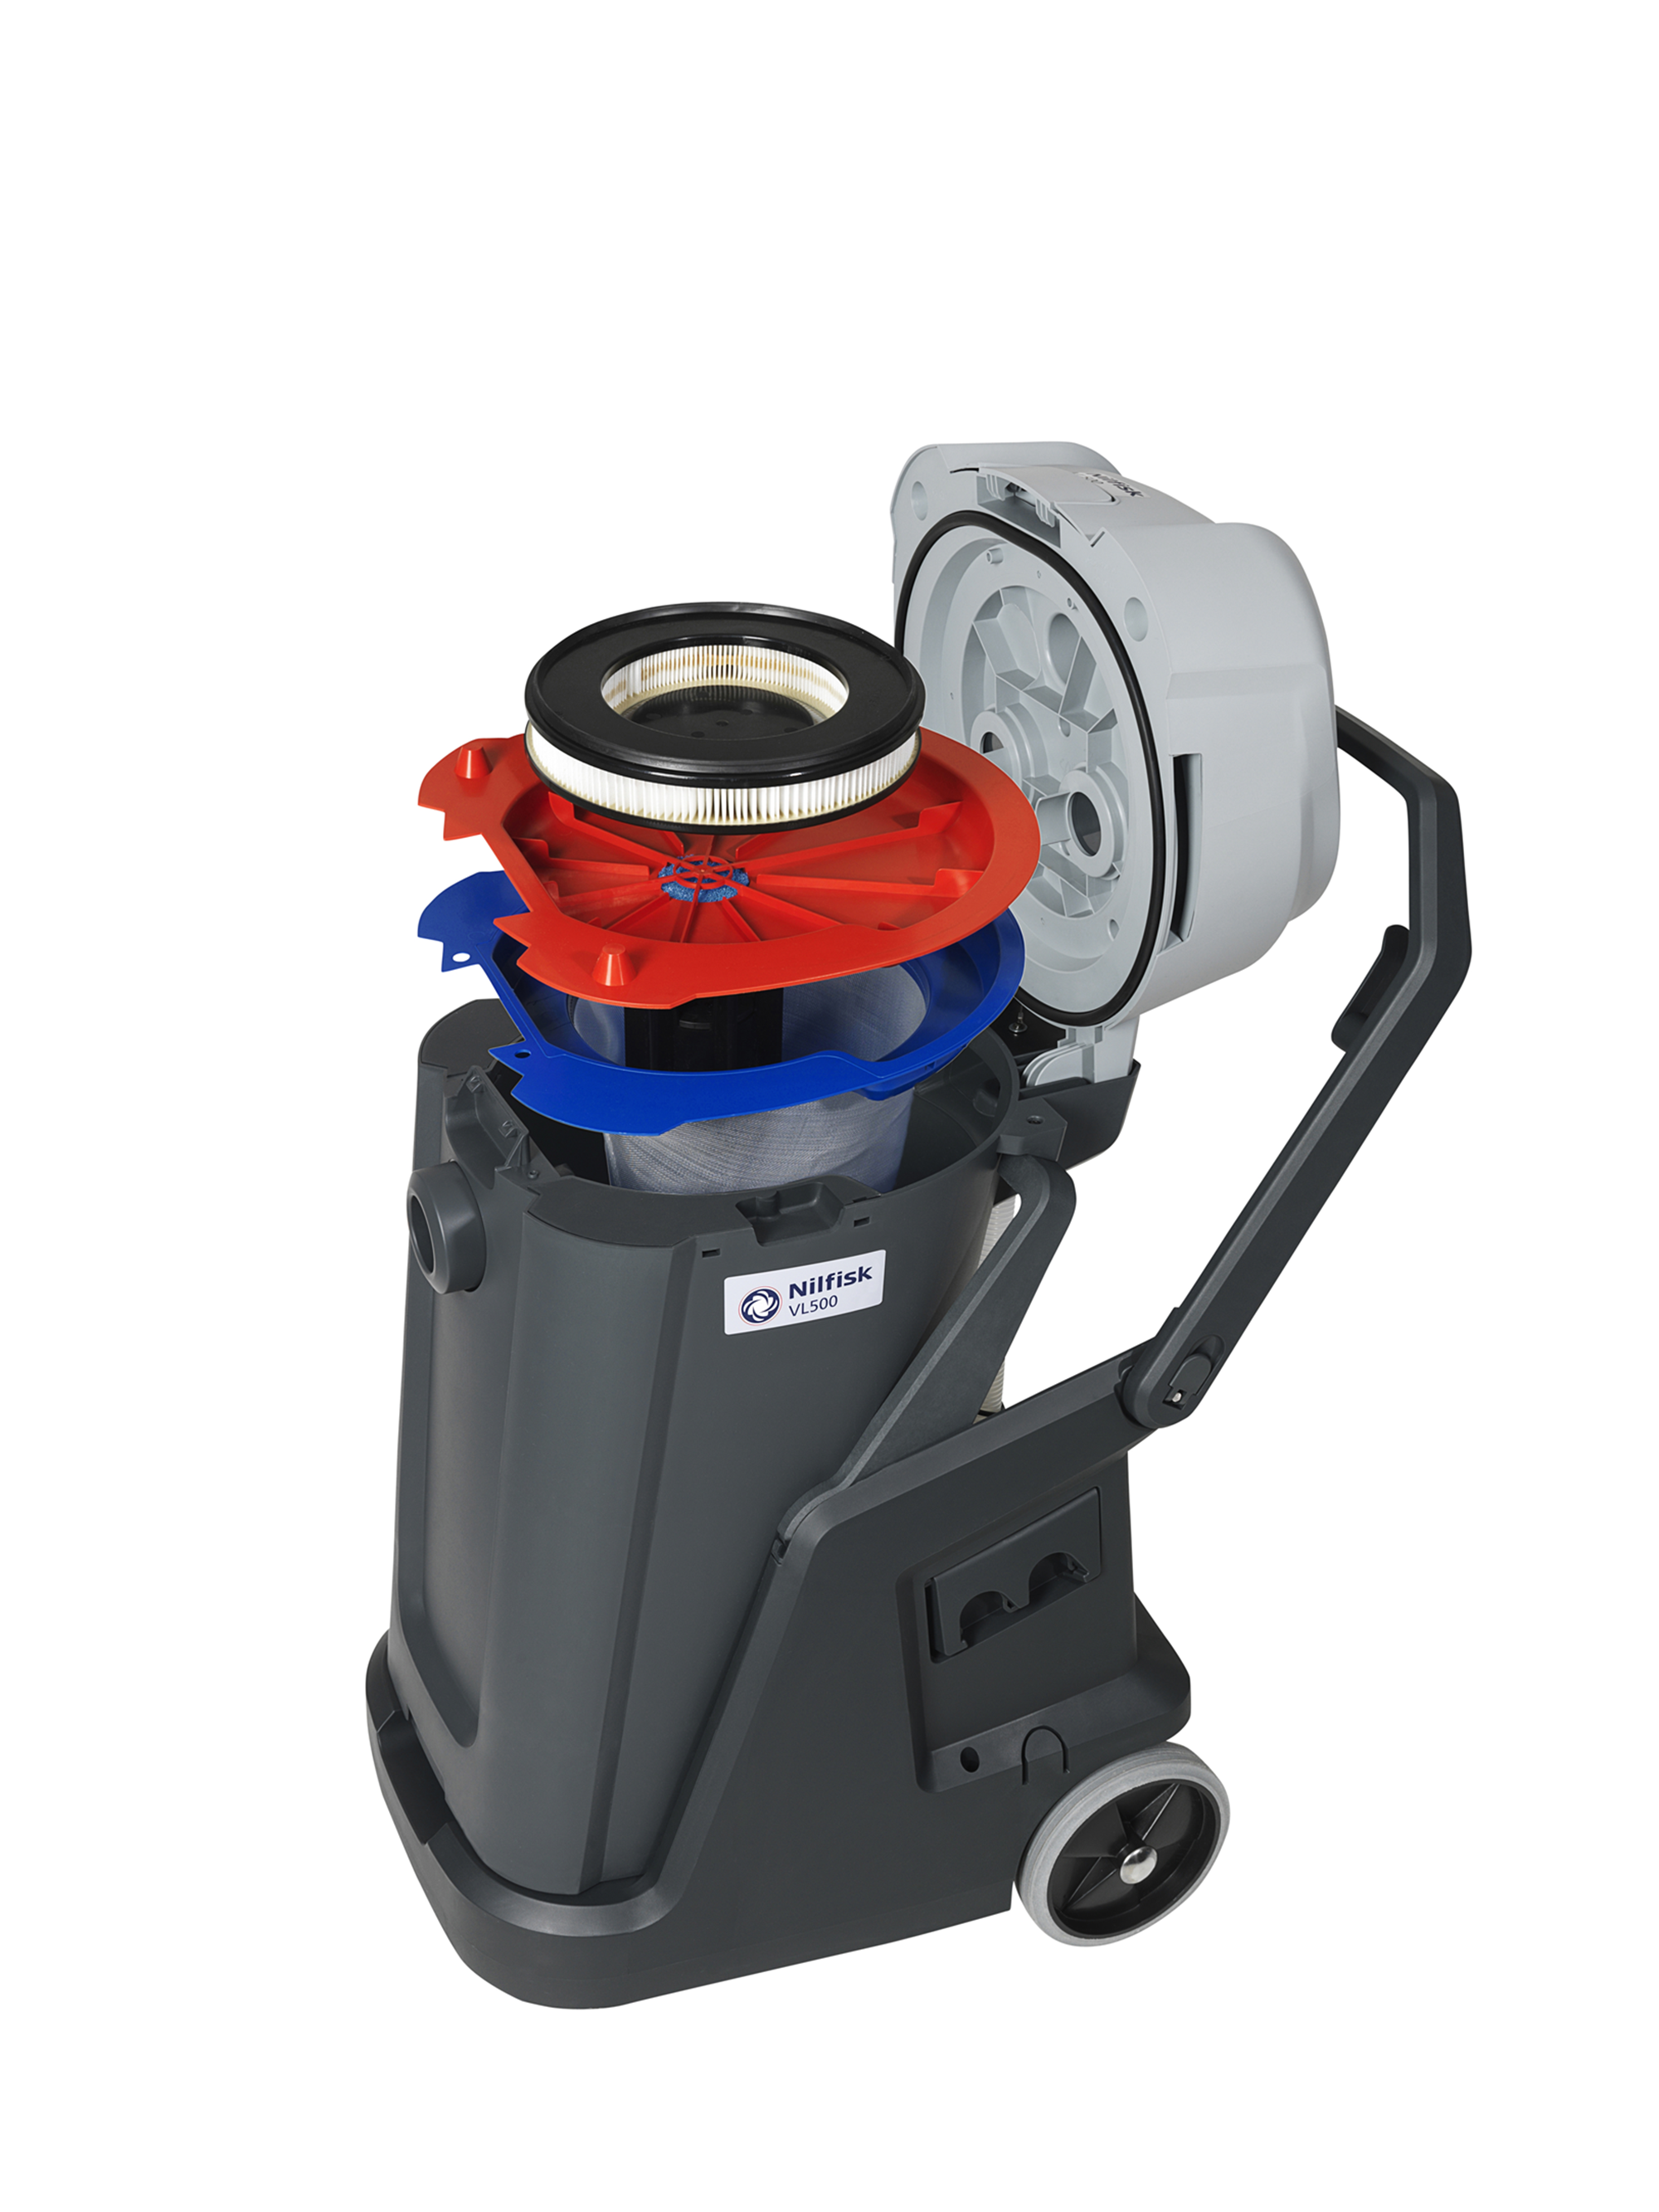 Product, Vacuum cleaners, Commercial vacuum cleaners, Wet and dry vacuum  cleaners, Nilfisk, VL500 75-2 EDF 220-240V/50 UK